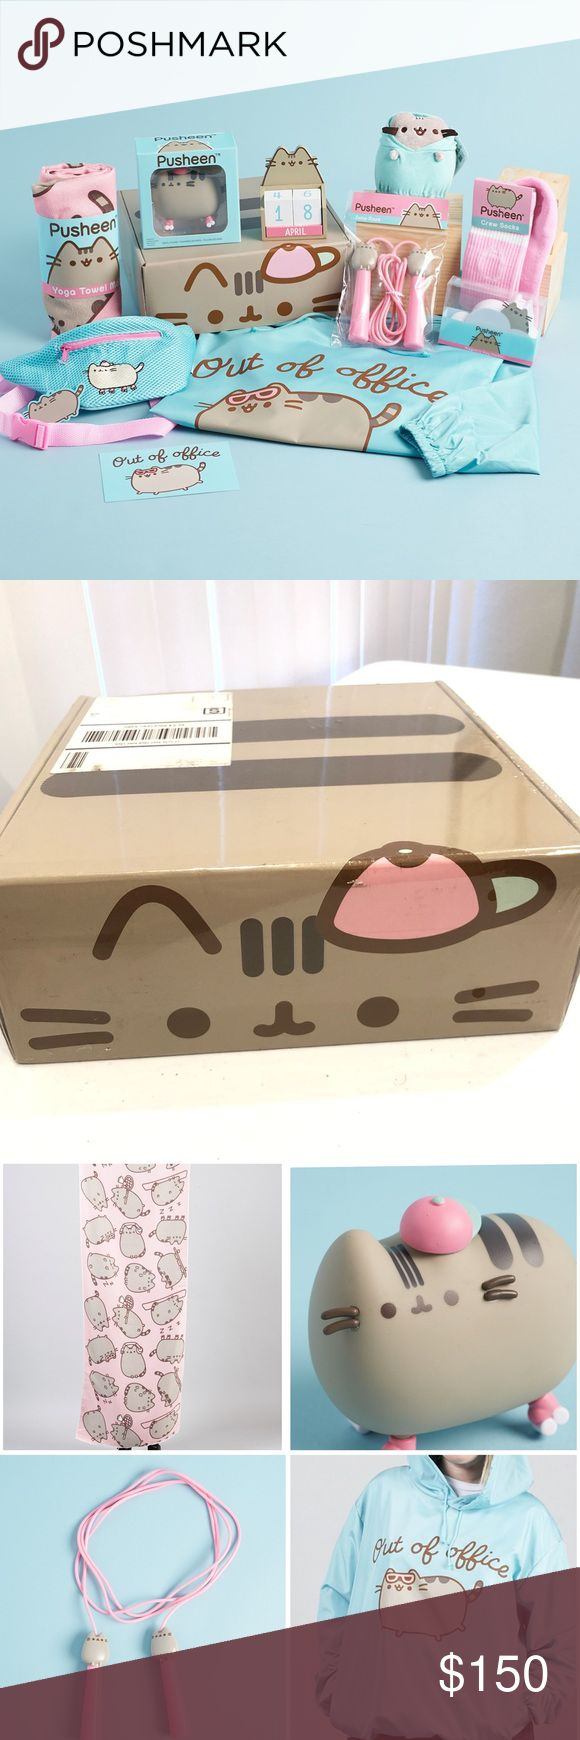 Pusheen Subscription Box Sealed Spring 2019 NWT Pusheen Subscription Box Spring …